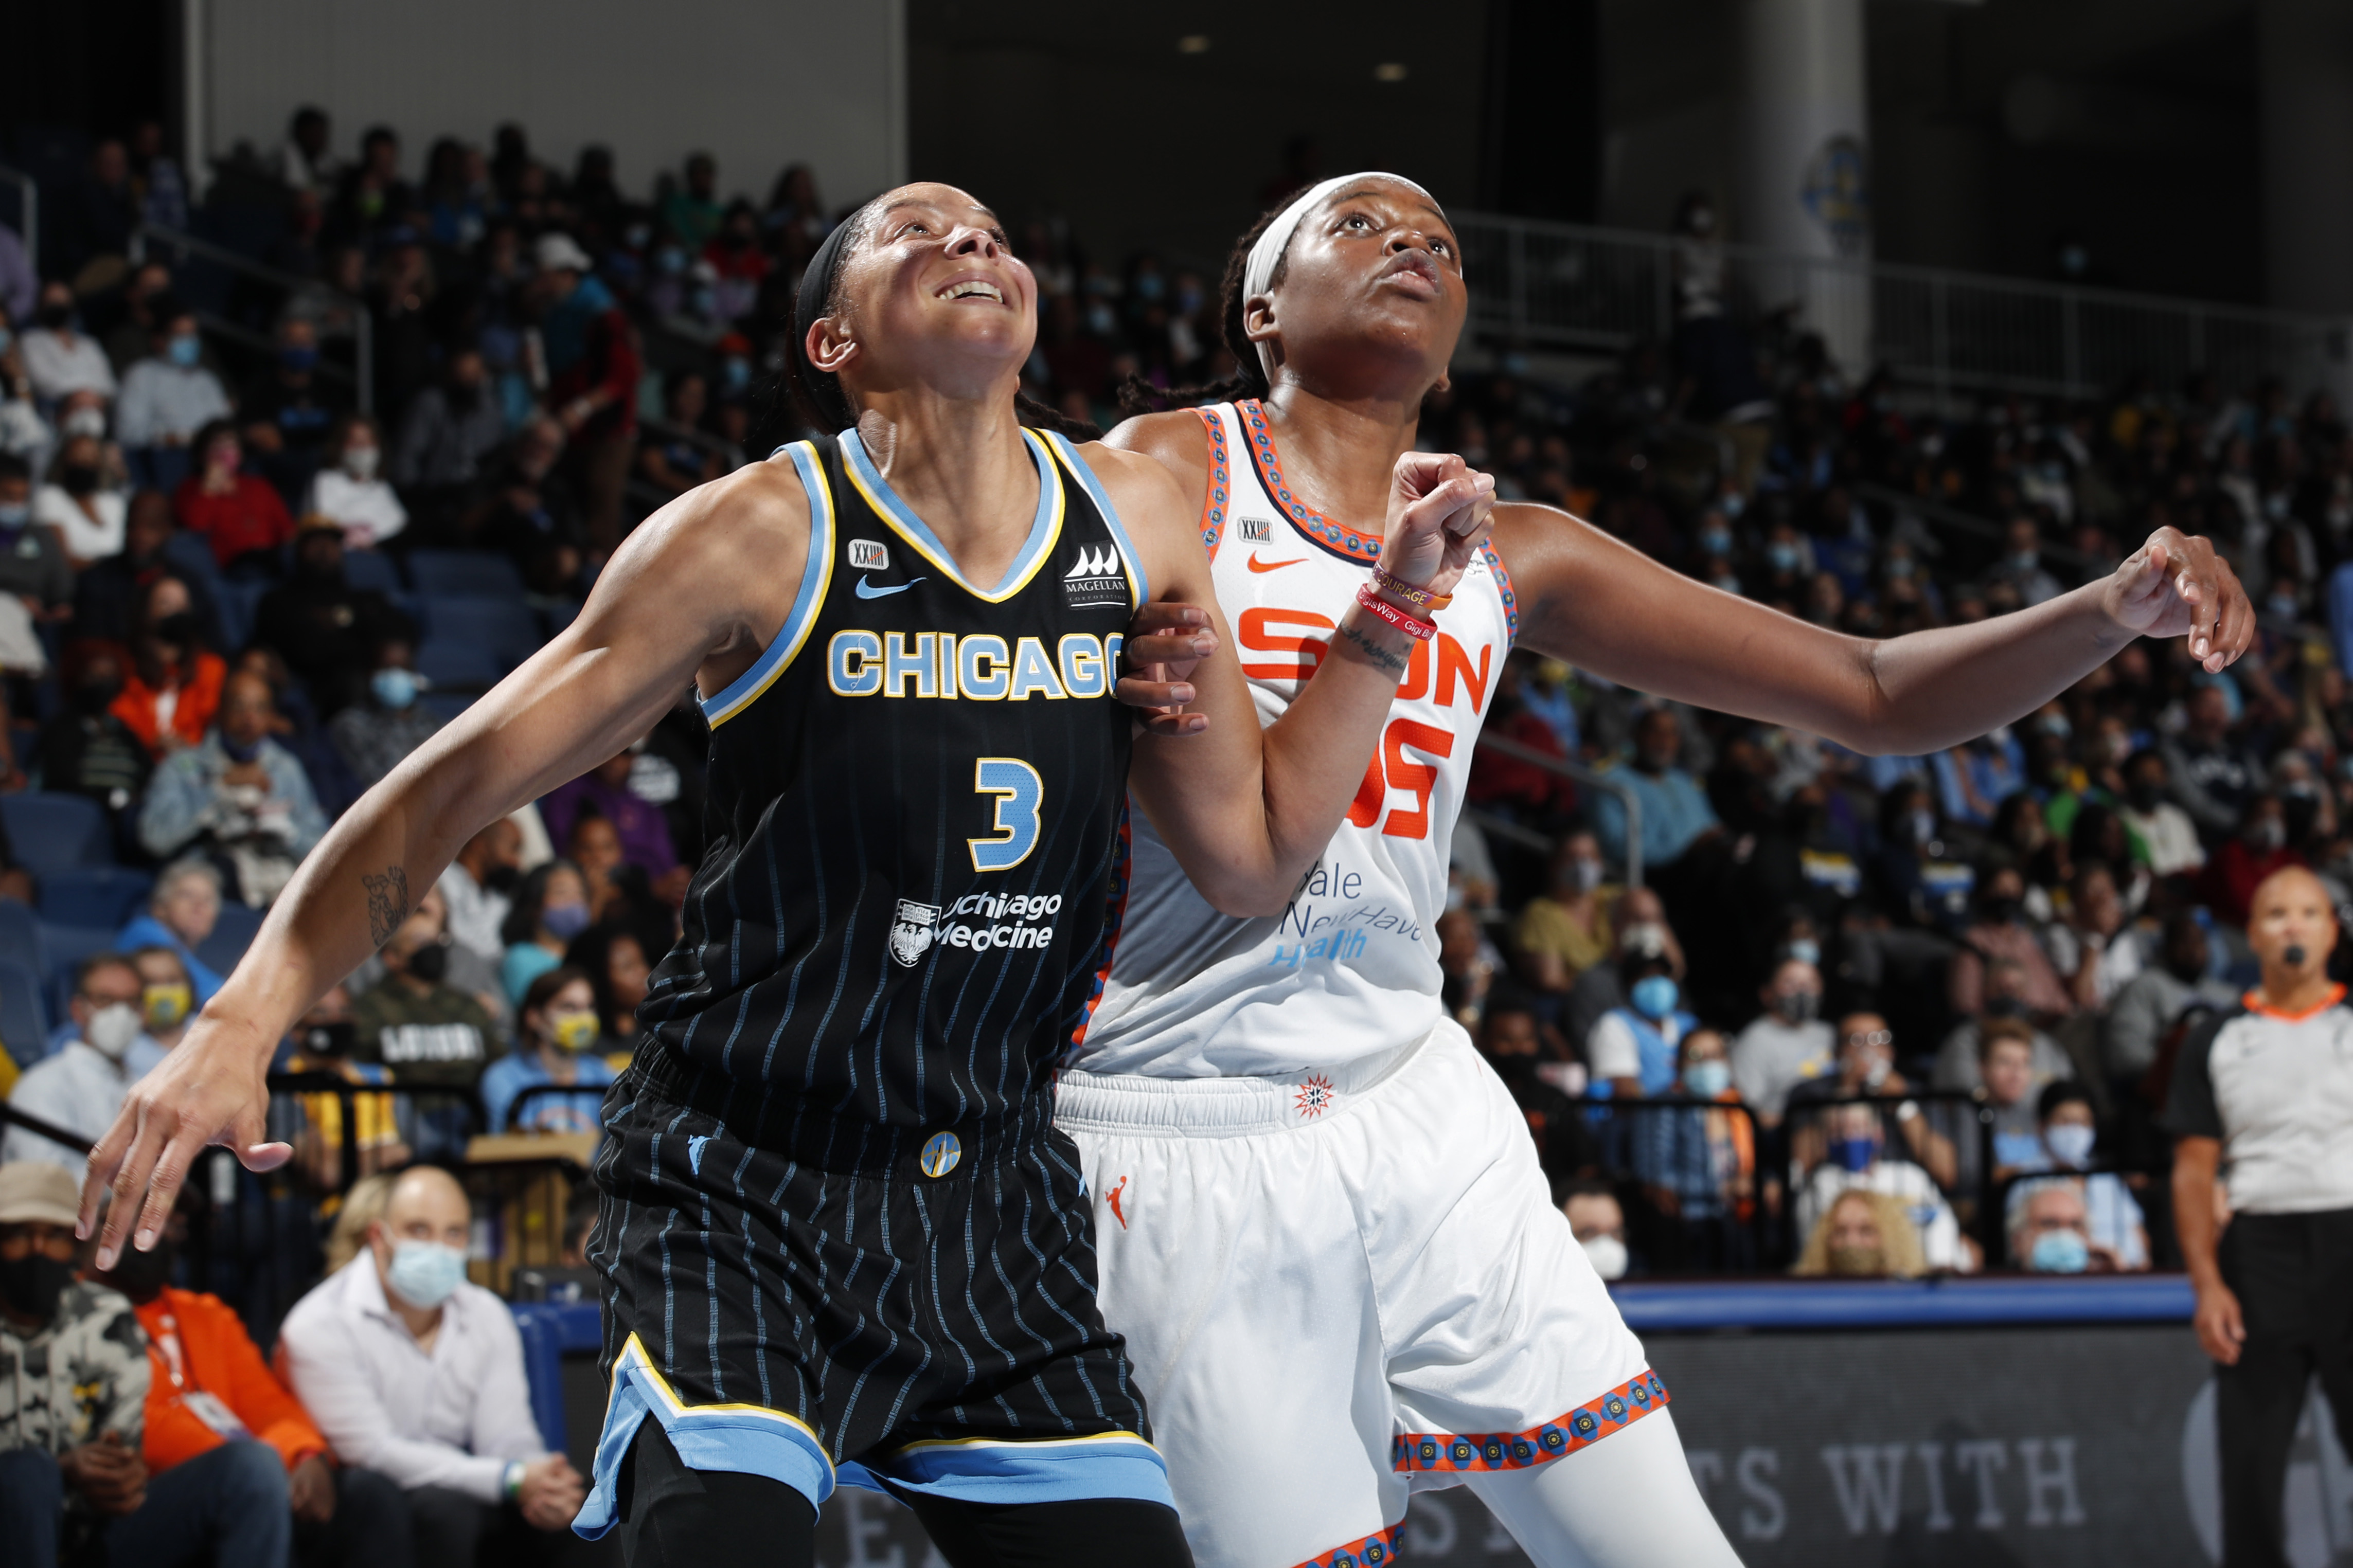 Candace Parker finished with 17 points, nine rebounds and seven assists in the Sky's Game 4 win over the Sun, solidifying their place in the WNBA Finals.